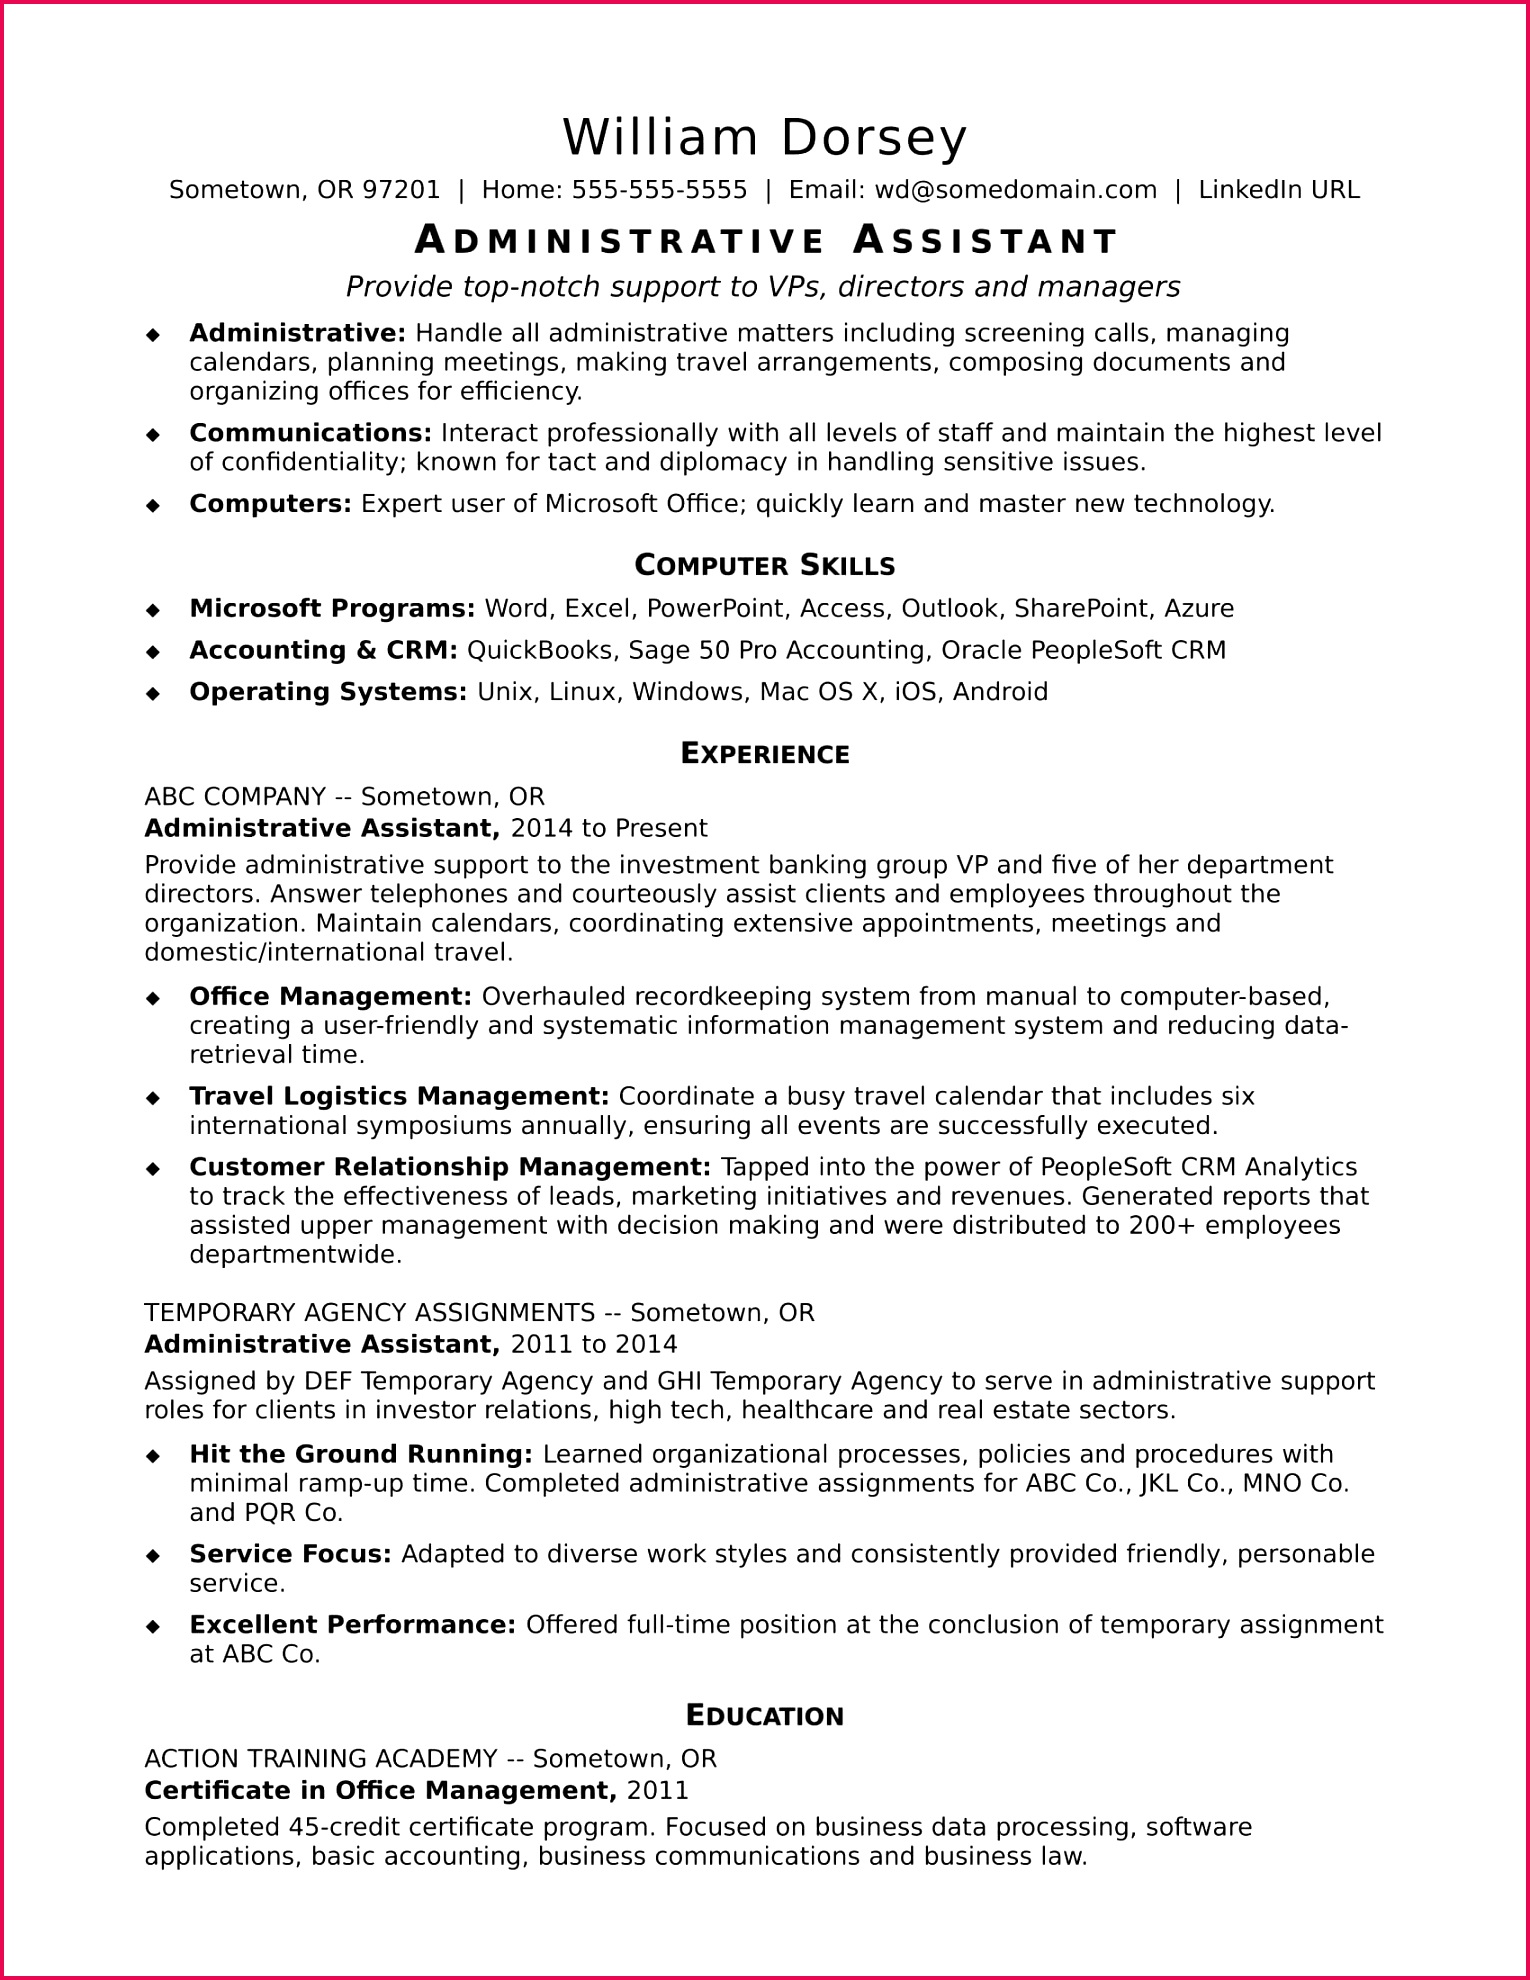 Entry level administrative assistant resume vast resume template executive assistant beautiful ssis resume 1700x2200 Templates